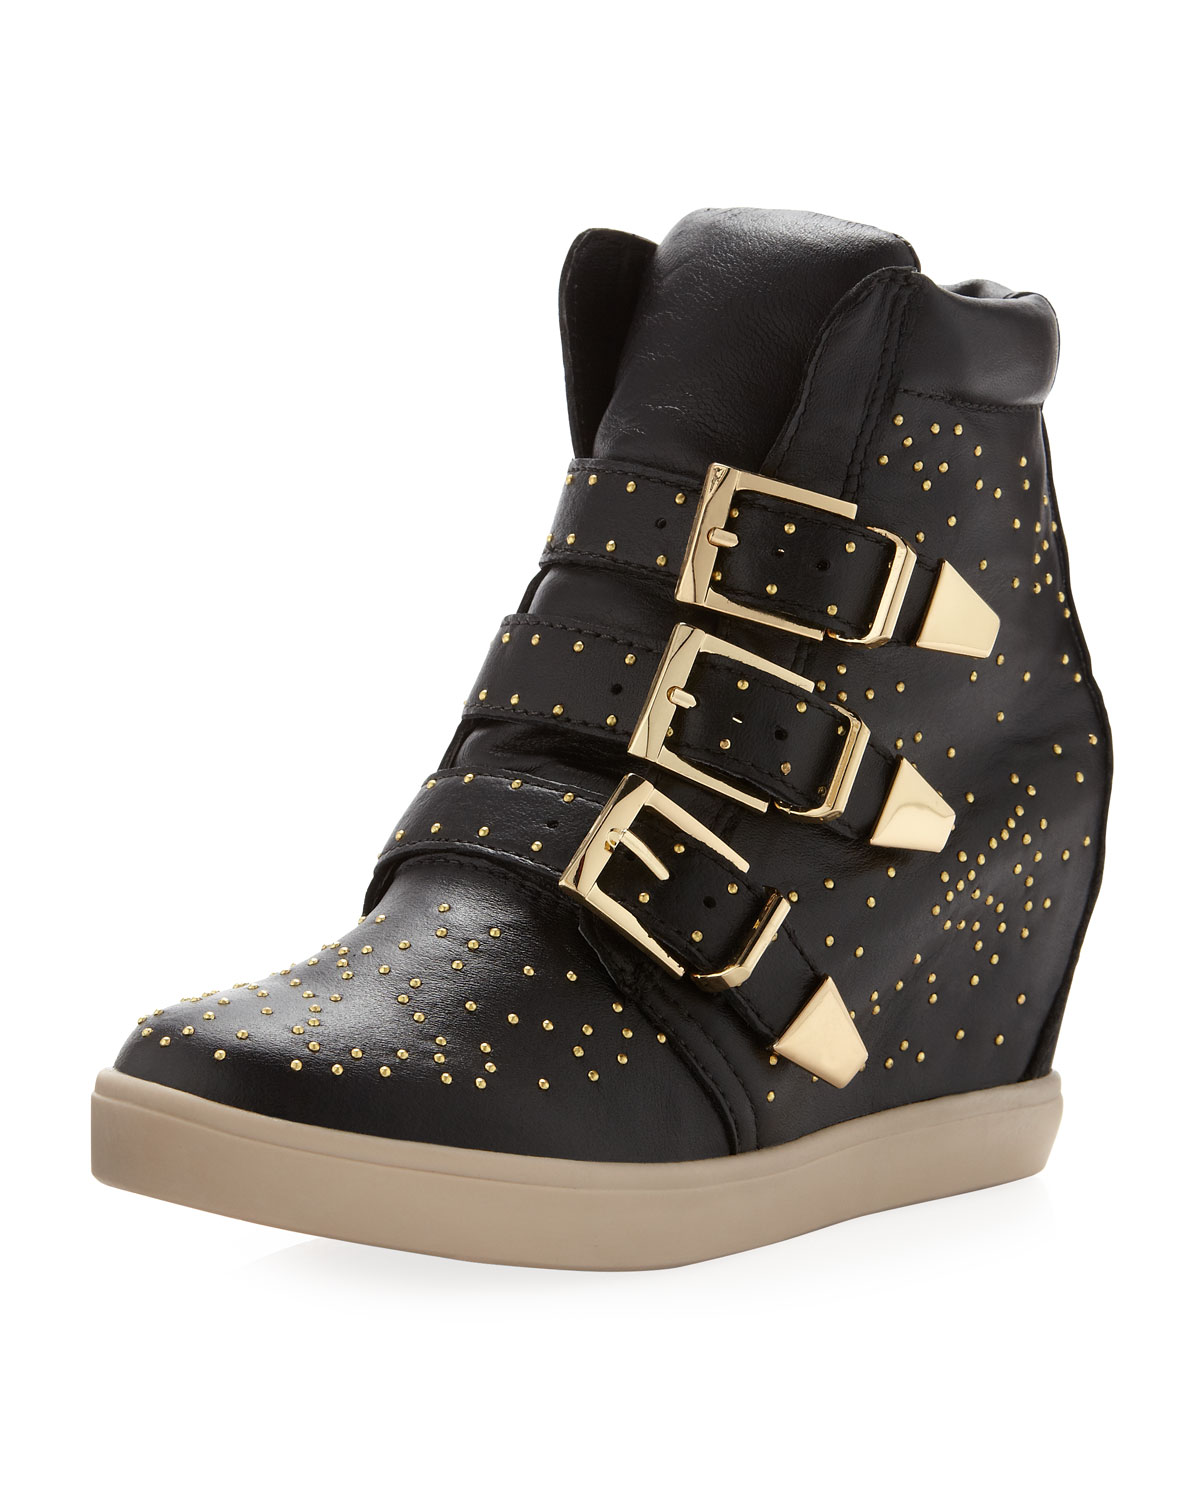 139125d8569 Lyst - Steven by Steve Madden Jeckle Studded Wedge Sneaker Black in ...